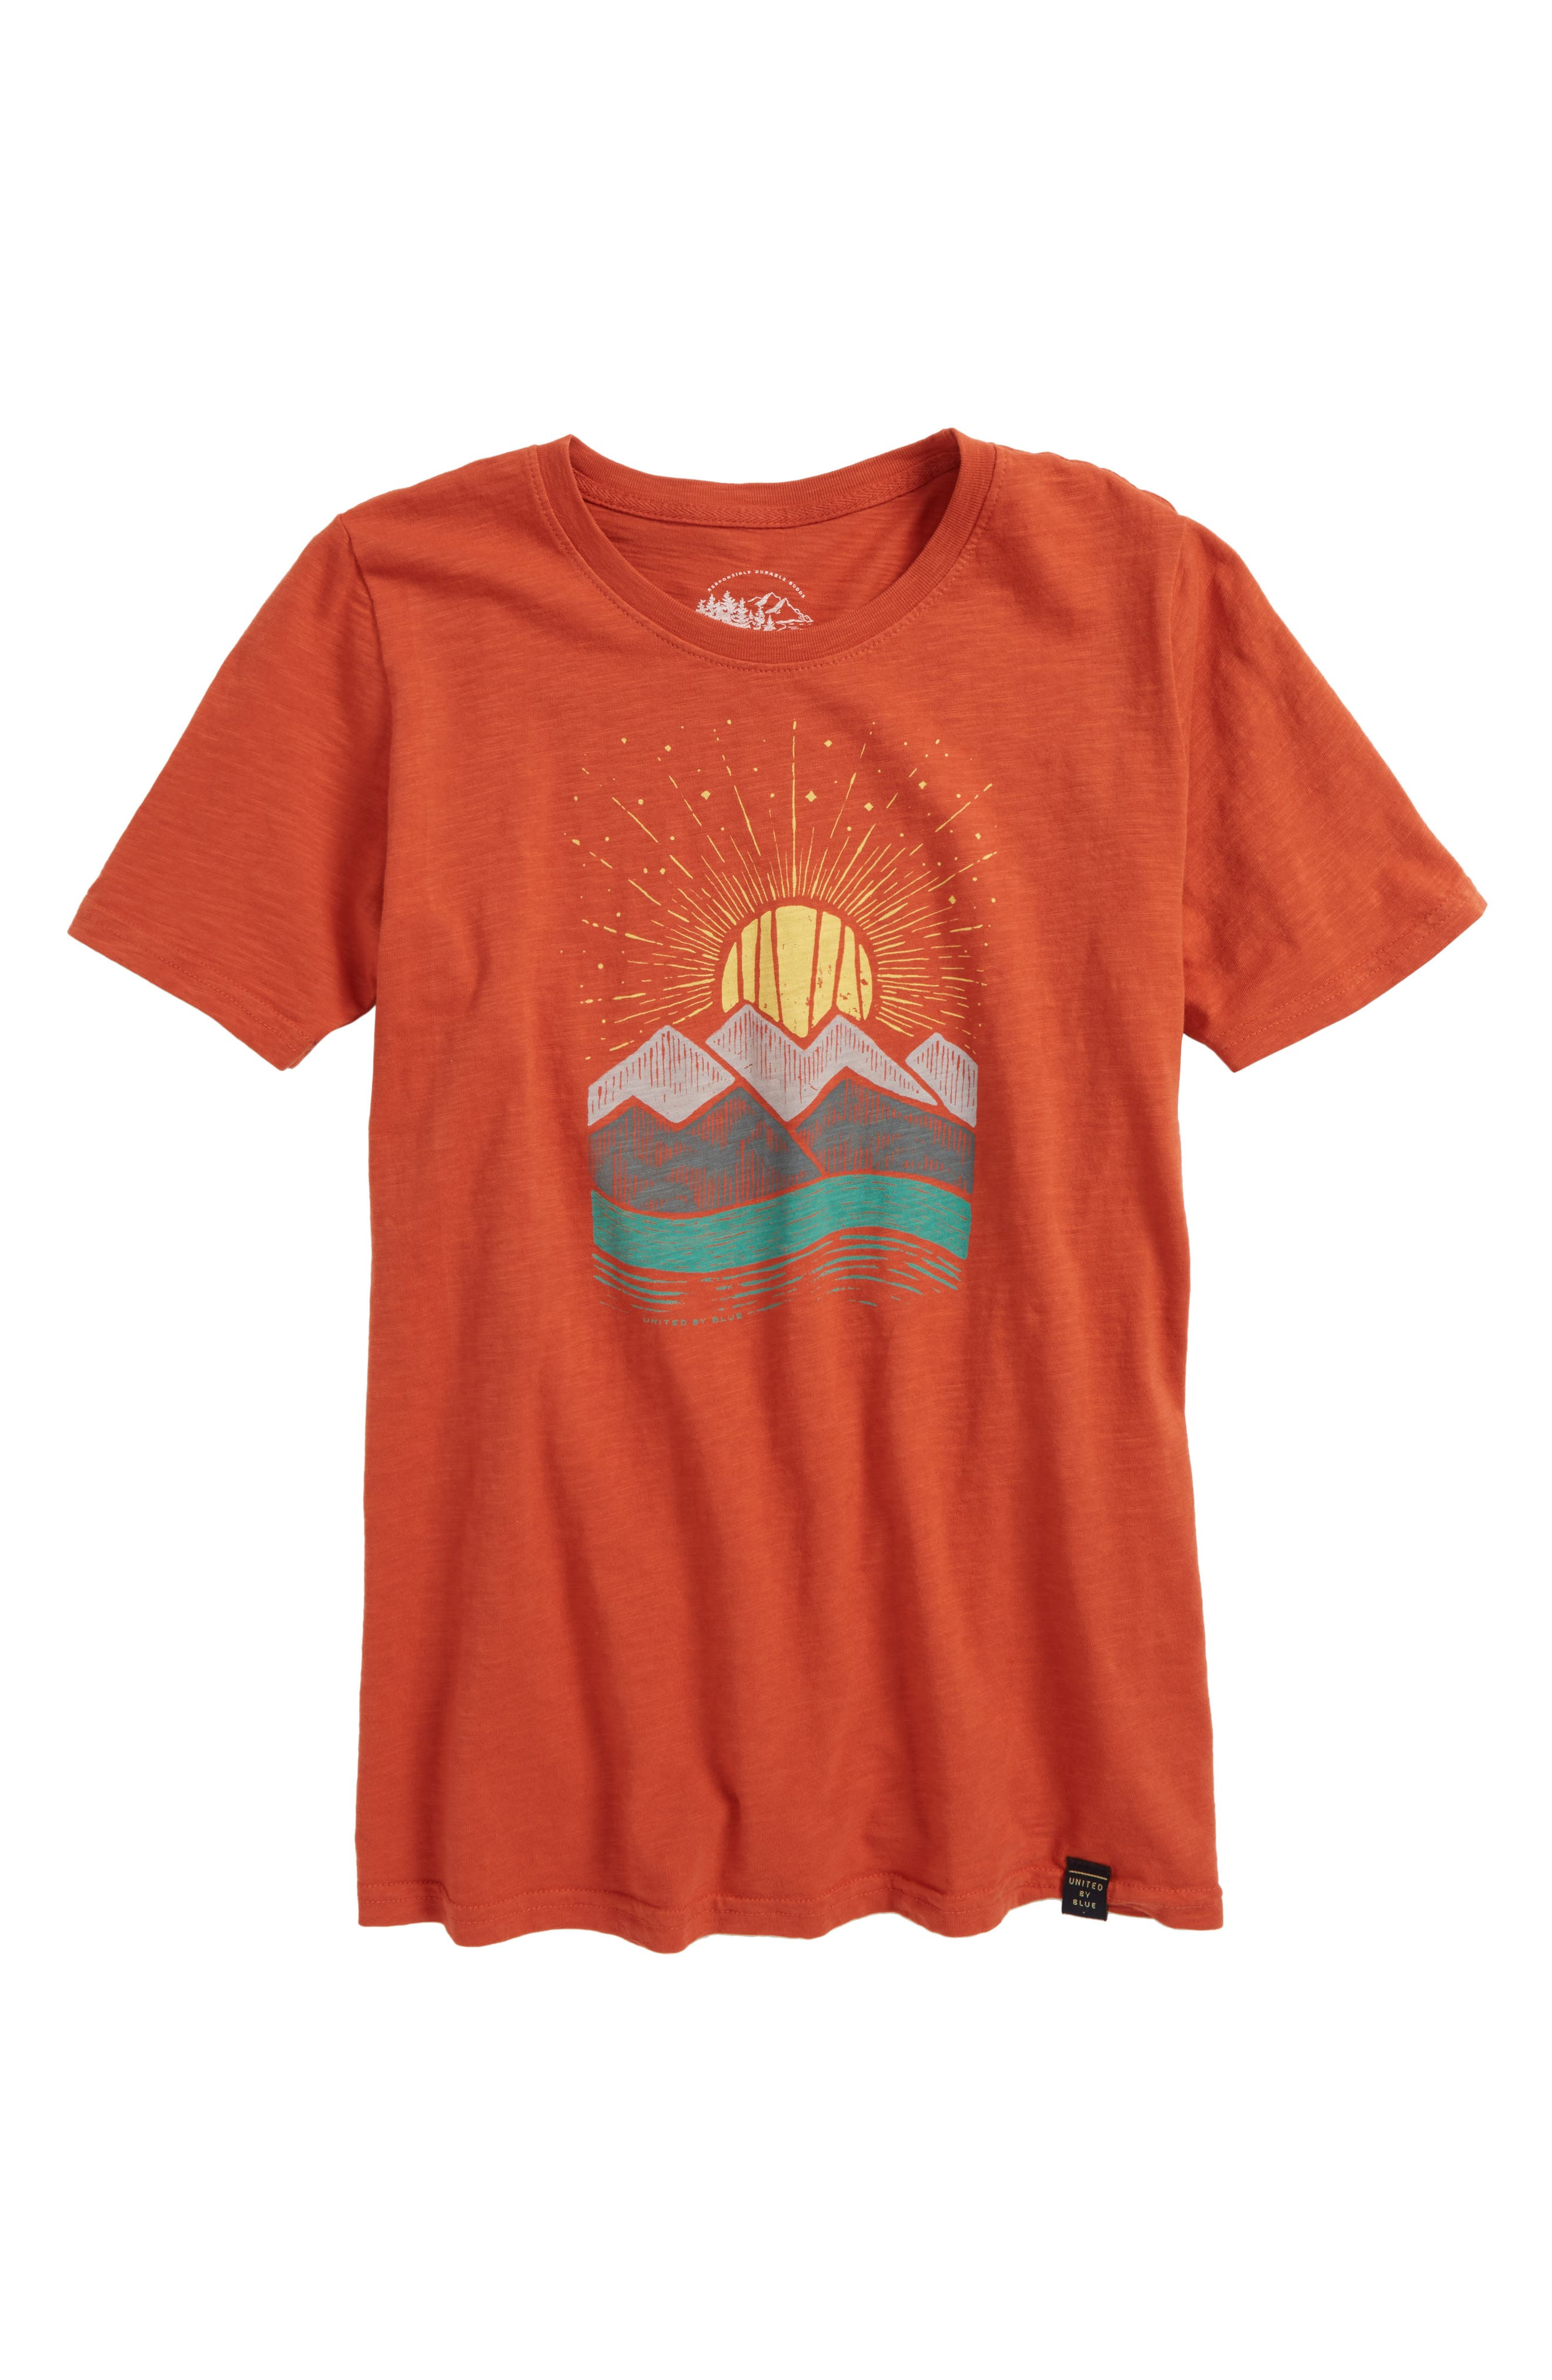 Geo Sun Organic Cotton T-Shirt,                             Main thumbnail 1, color,                             800